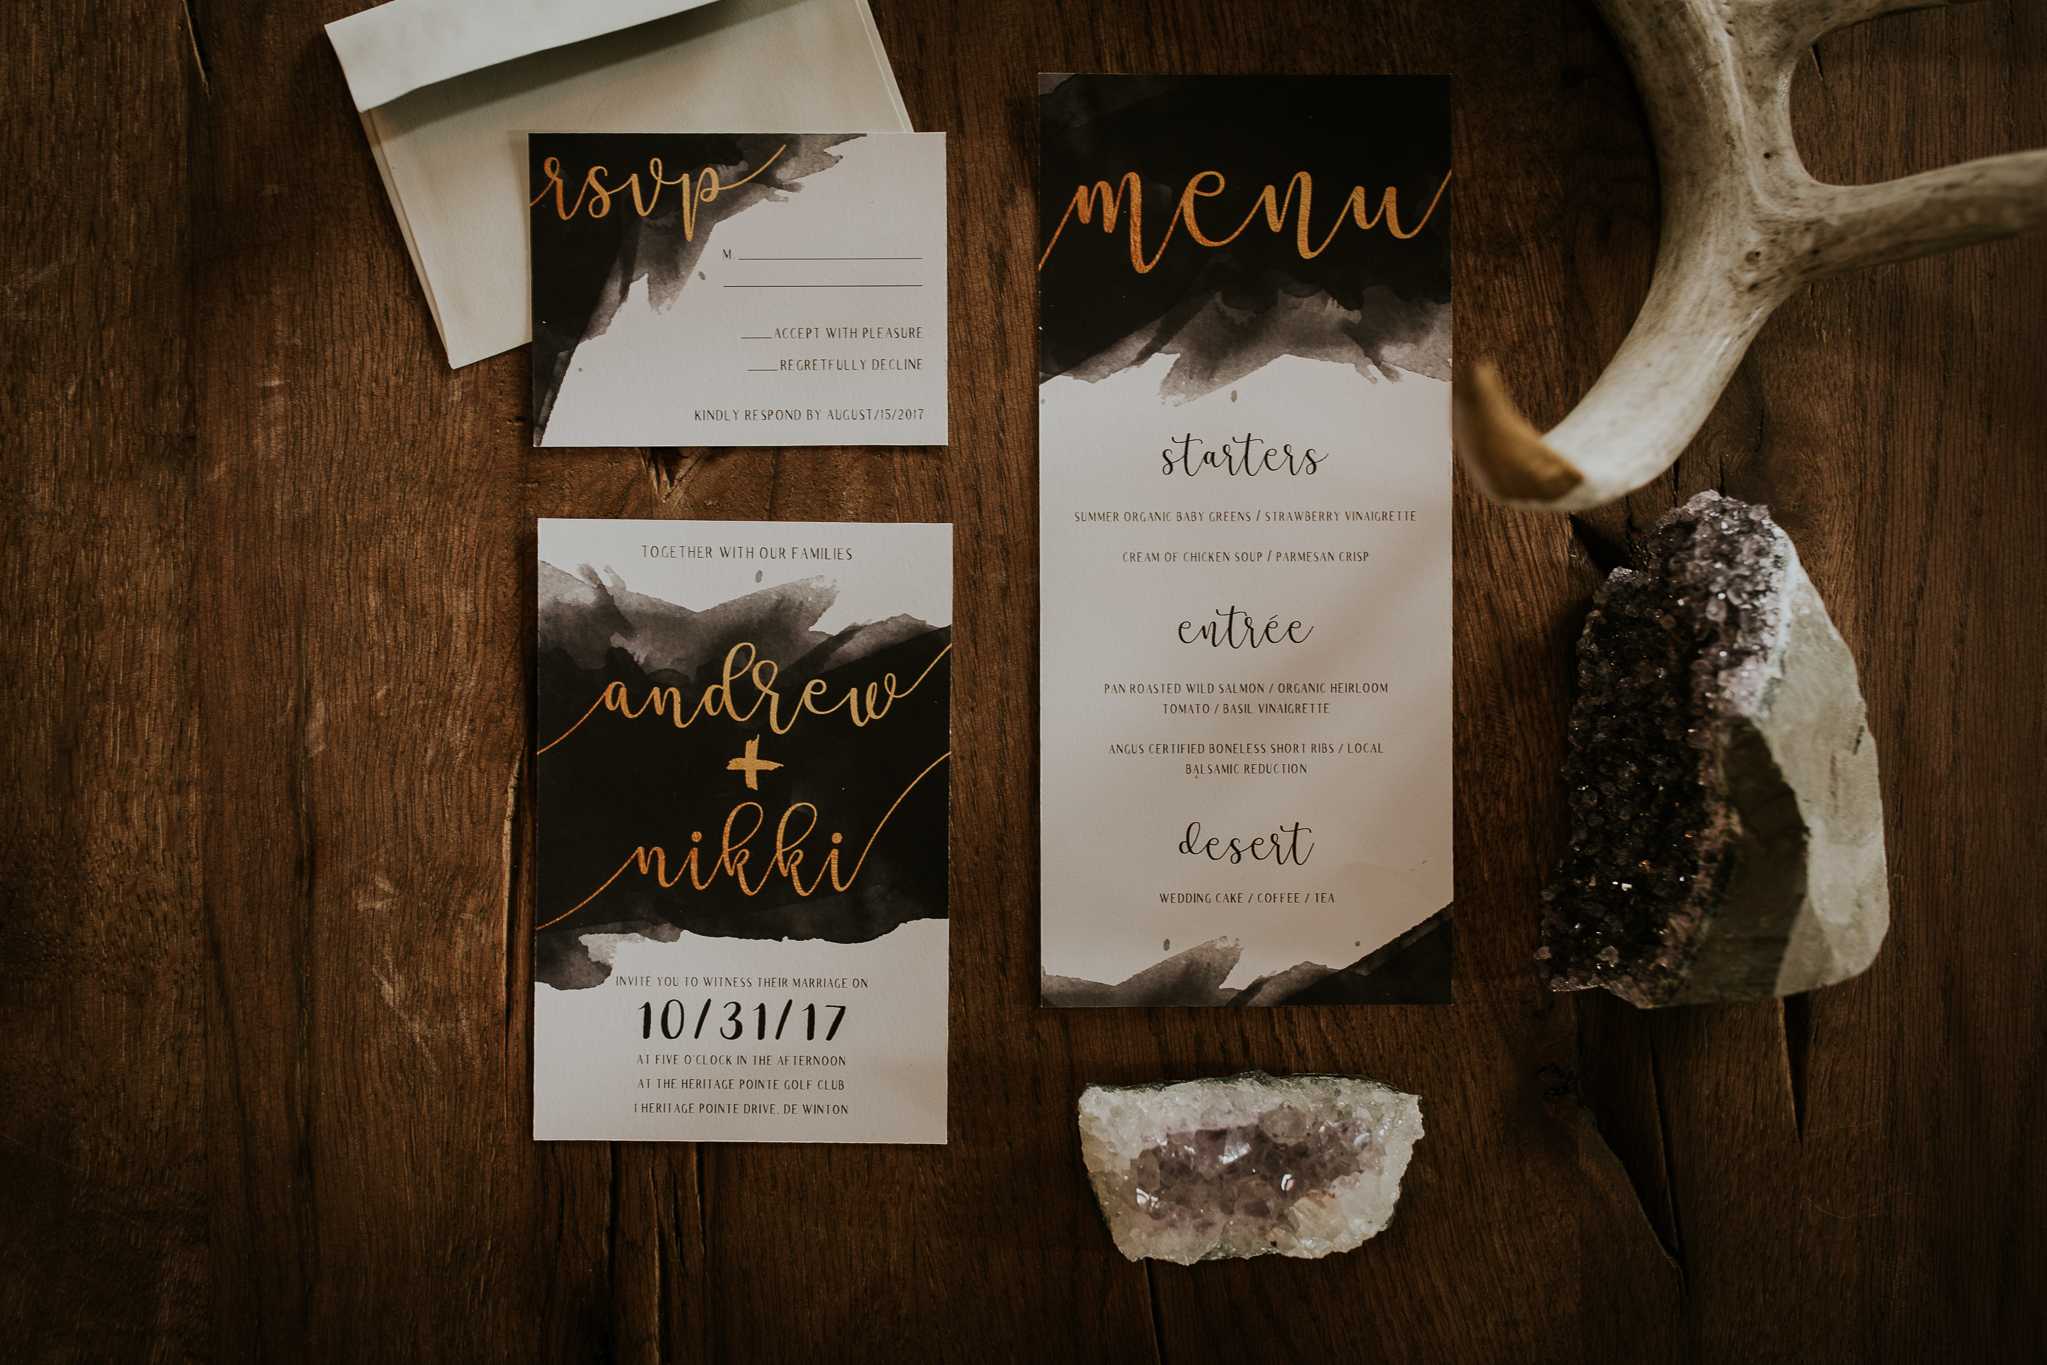 Dark and moody wedding stationary with gold font and amethyst crystal accents